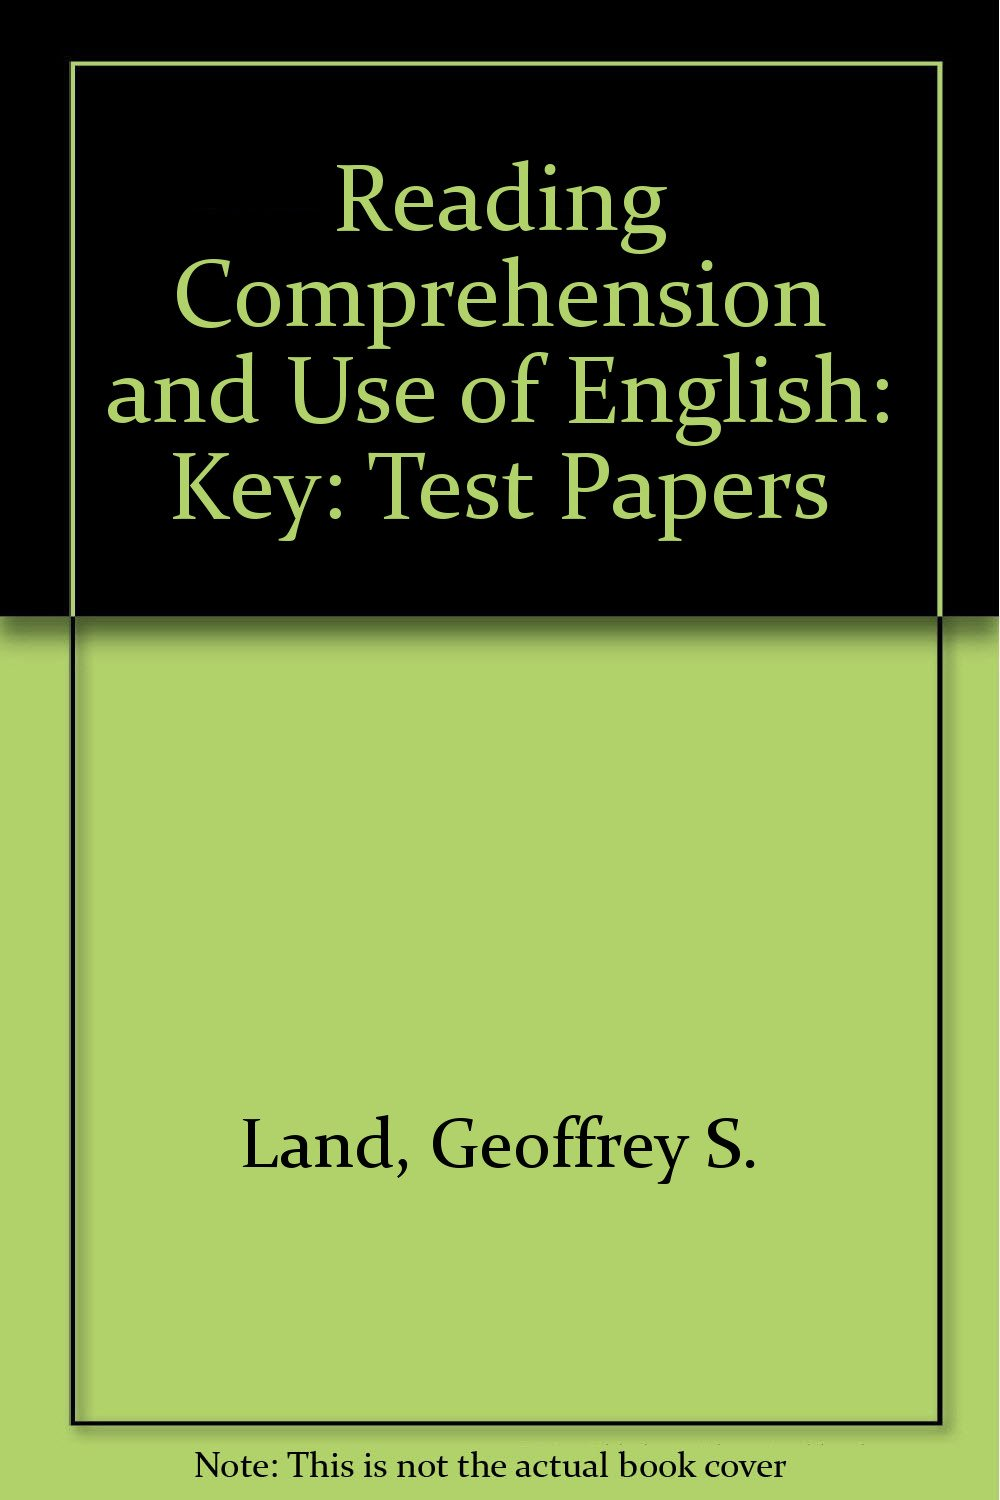 - Reading Comprehension' & 'Use Of English Test Papers' Teacher' Key